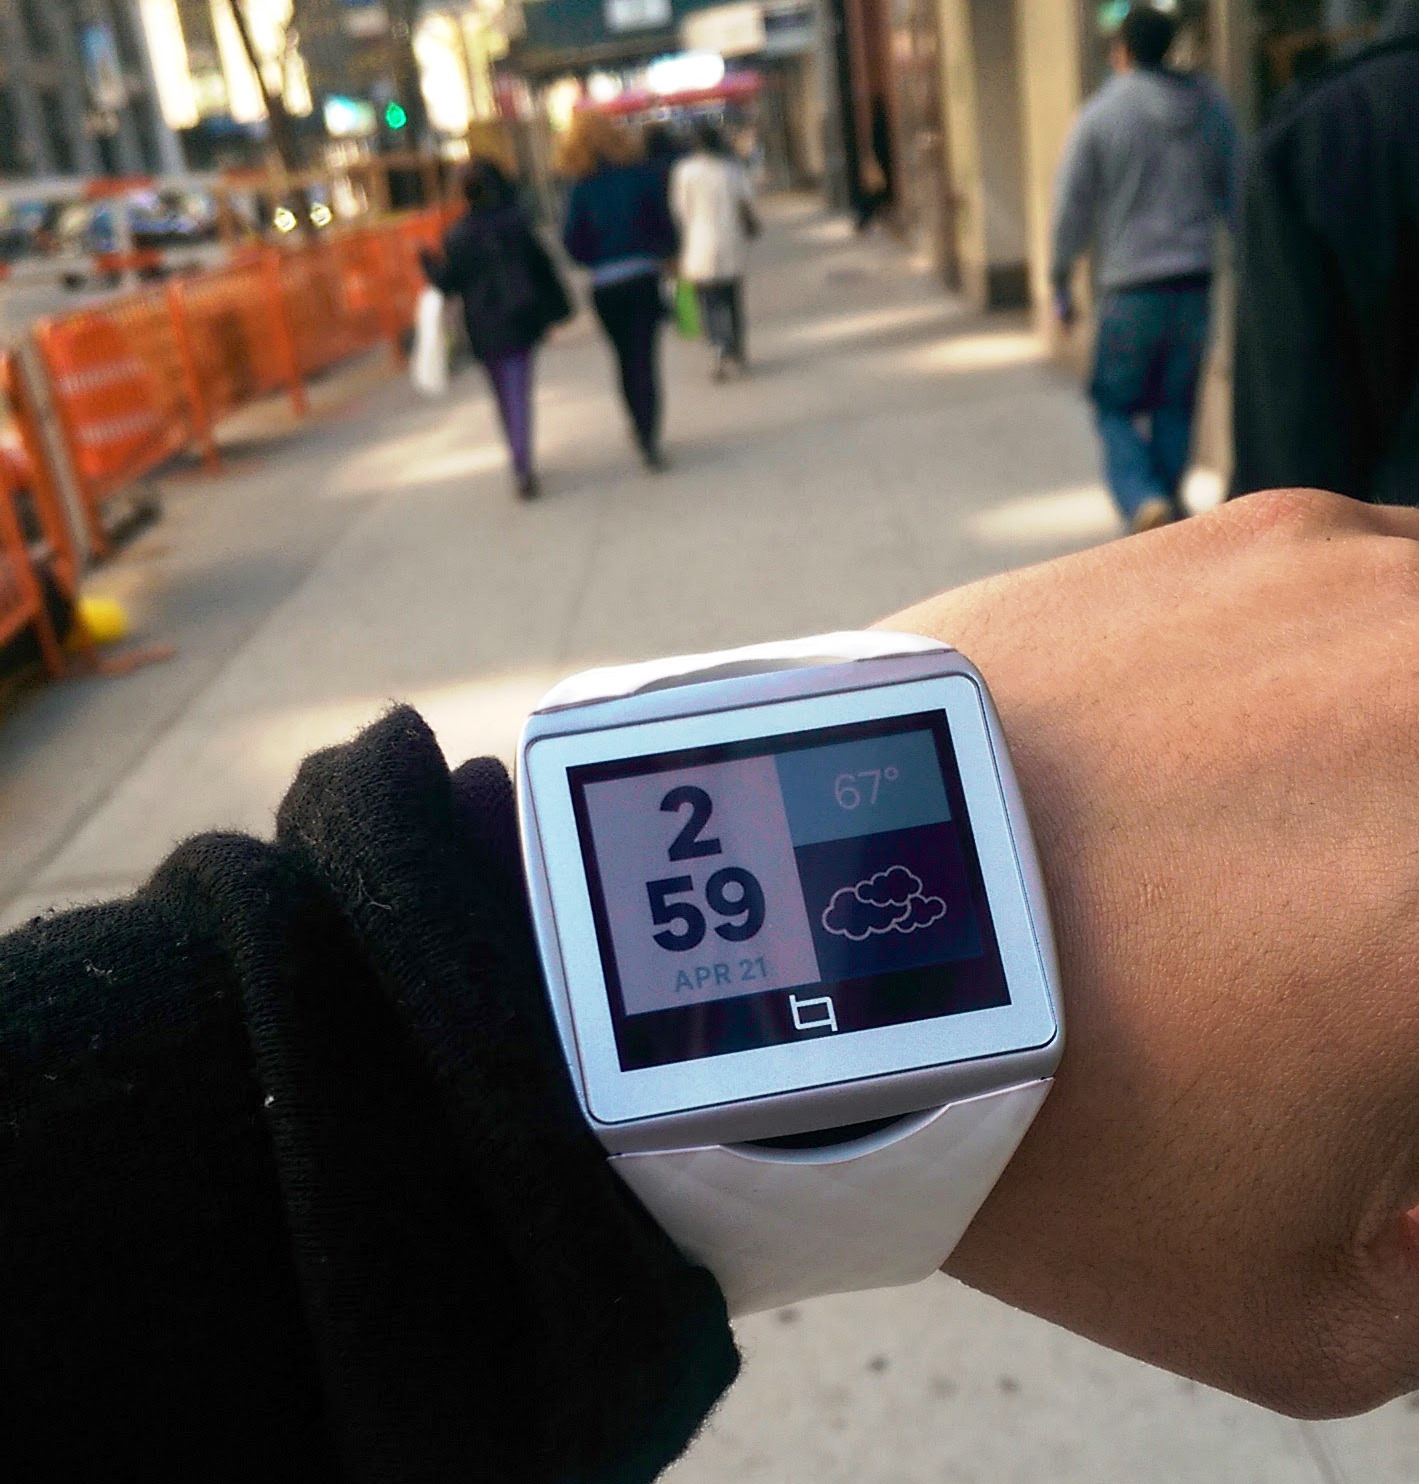 Toq, The Qualcomm Smartwatch That Has No Power Button